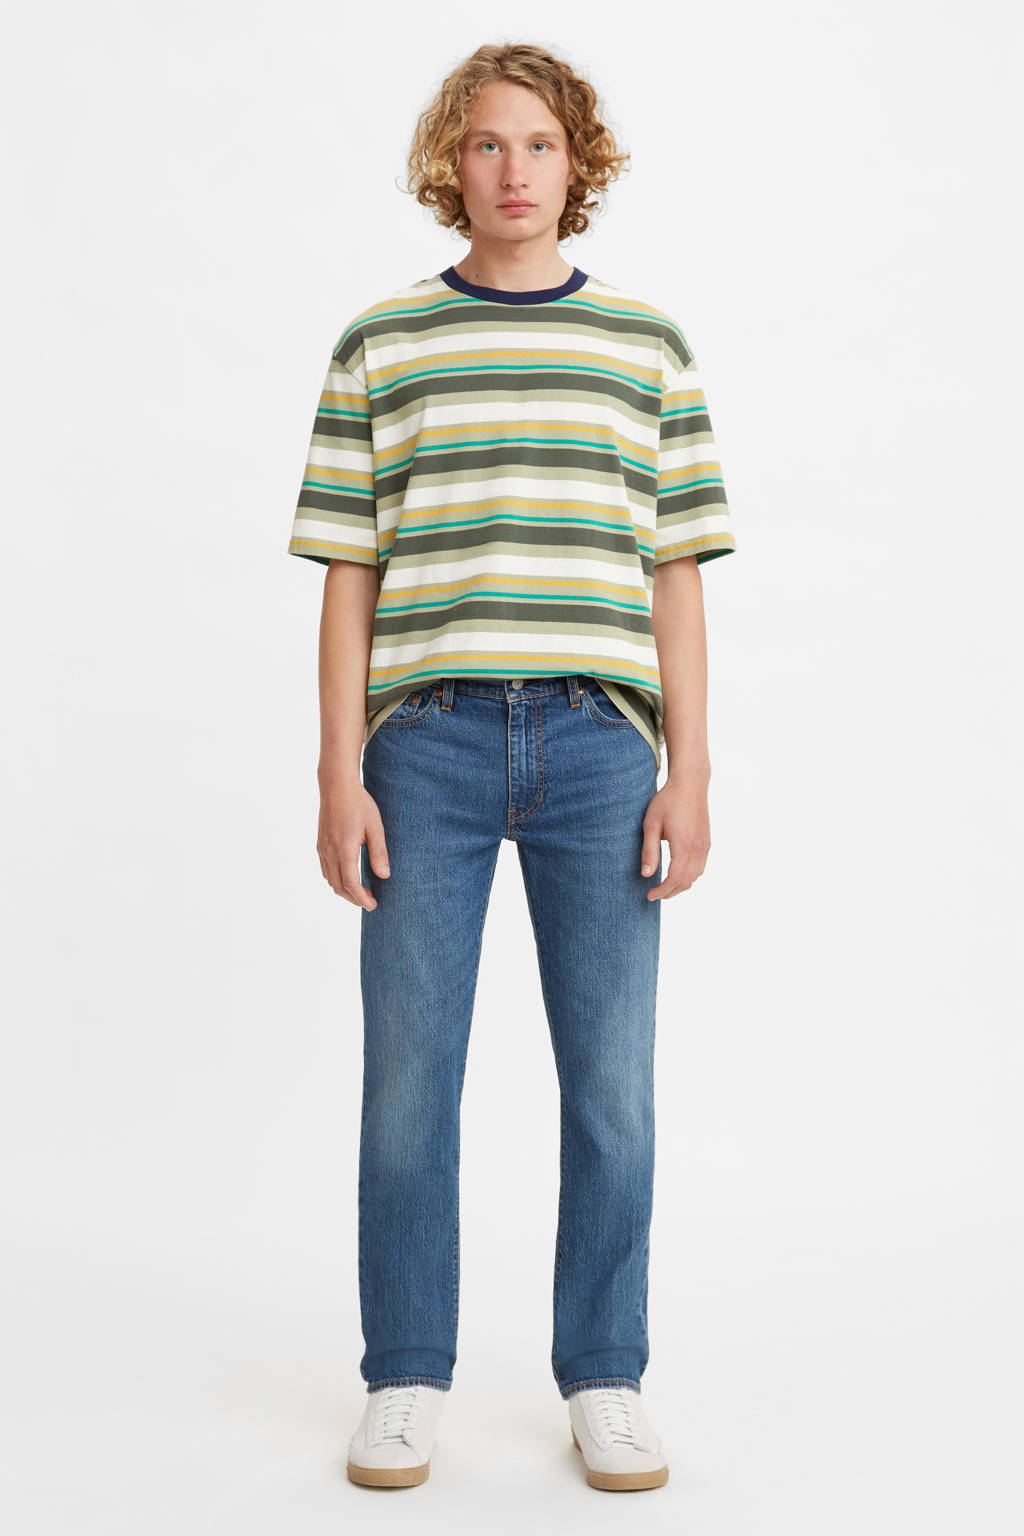 Levi's 511 slim fit jeans every little thing, Every little thing